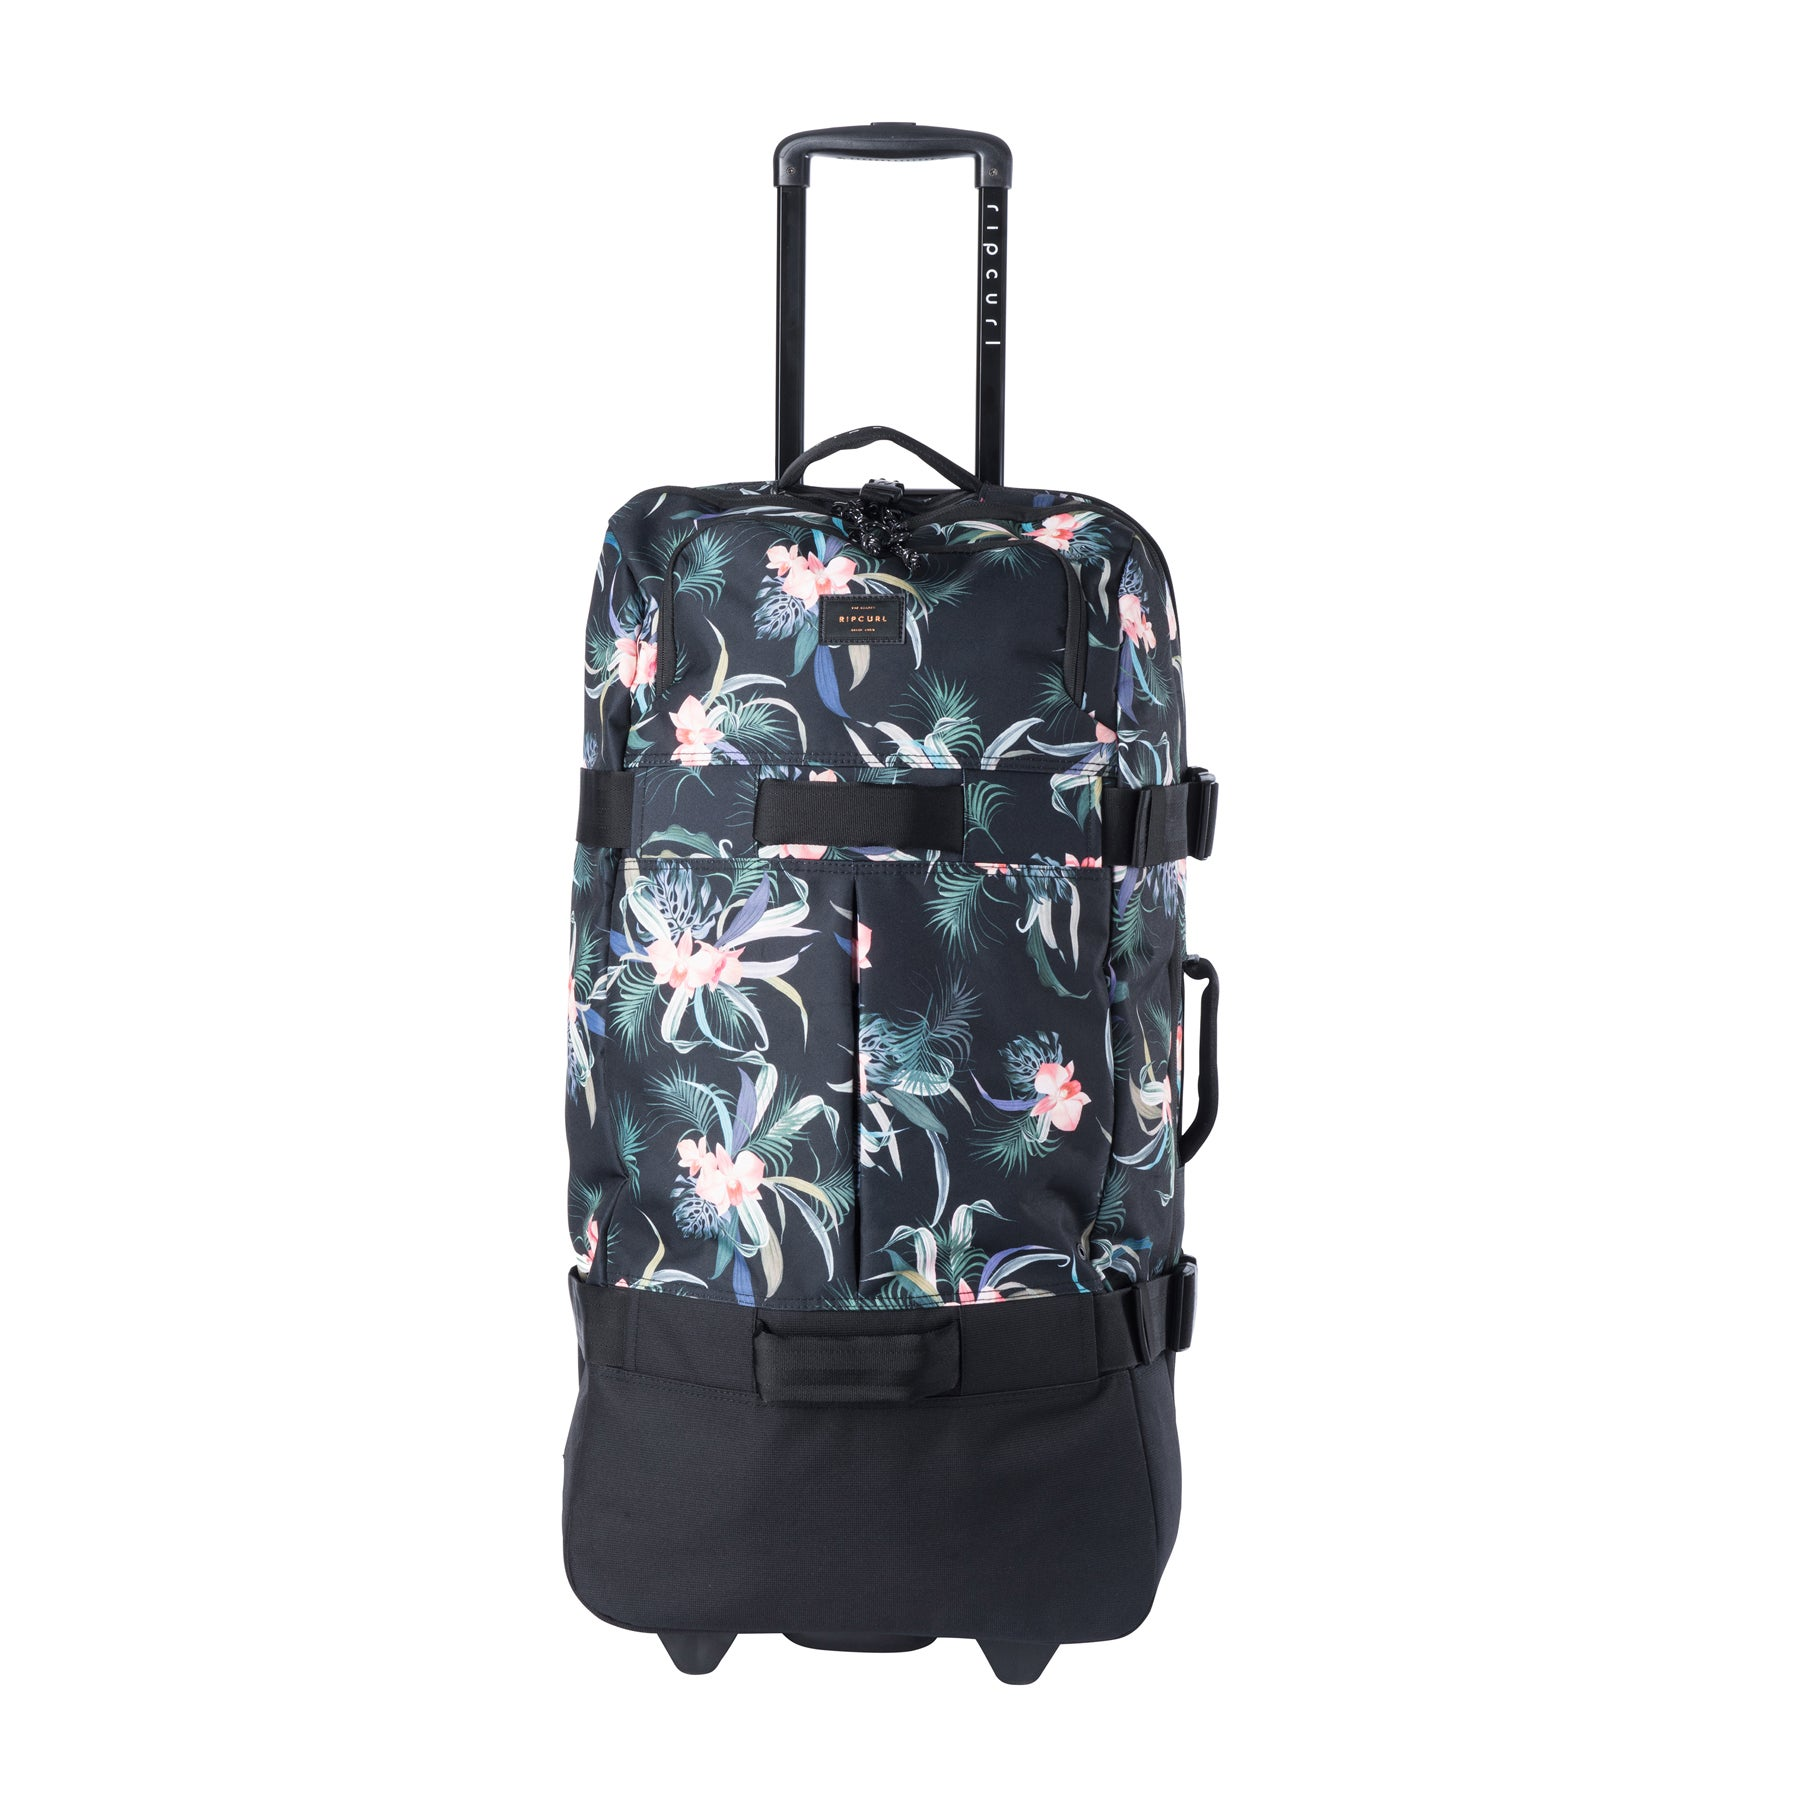 Rip Curl F-light Global Cloudbreak Womens Luggage - Black